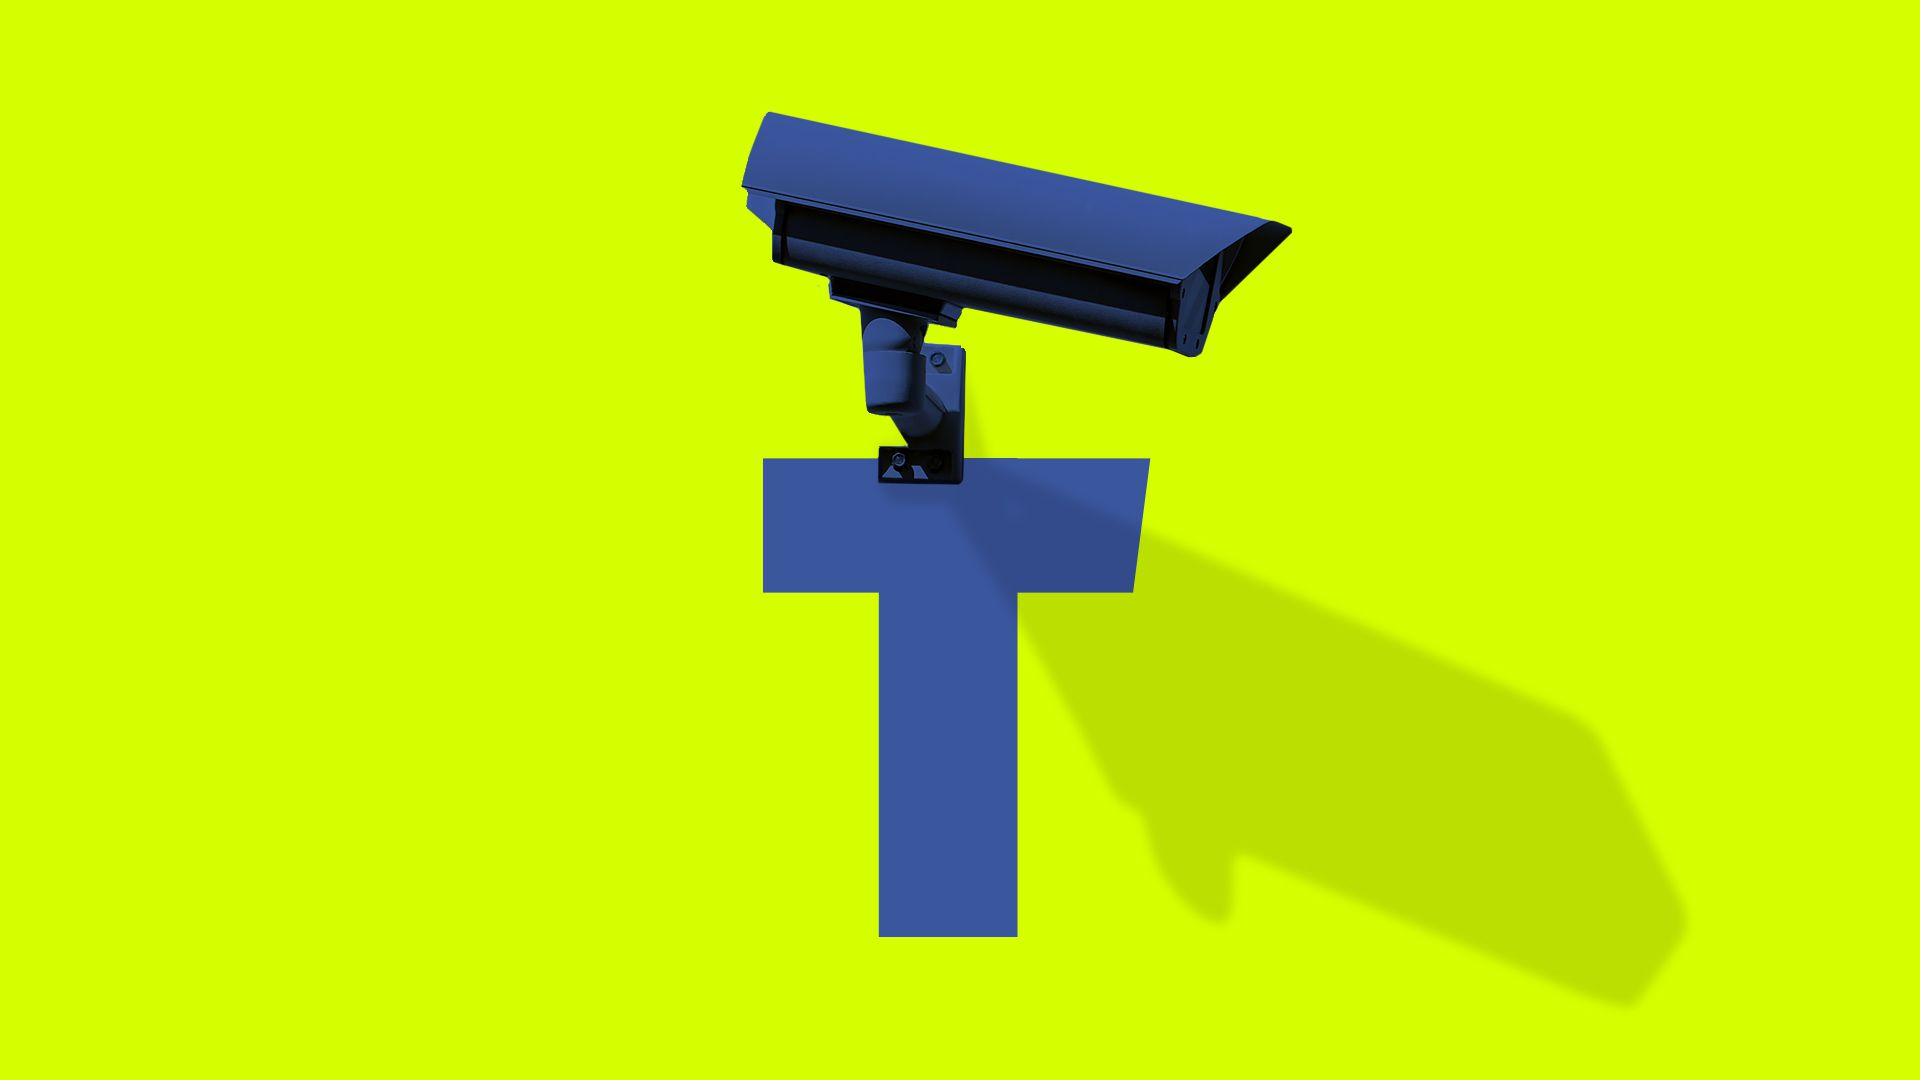 Illustration of Facebook's F brand with the top of the F as a surveillance camera